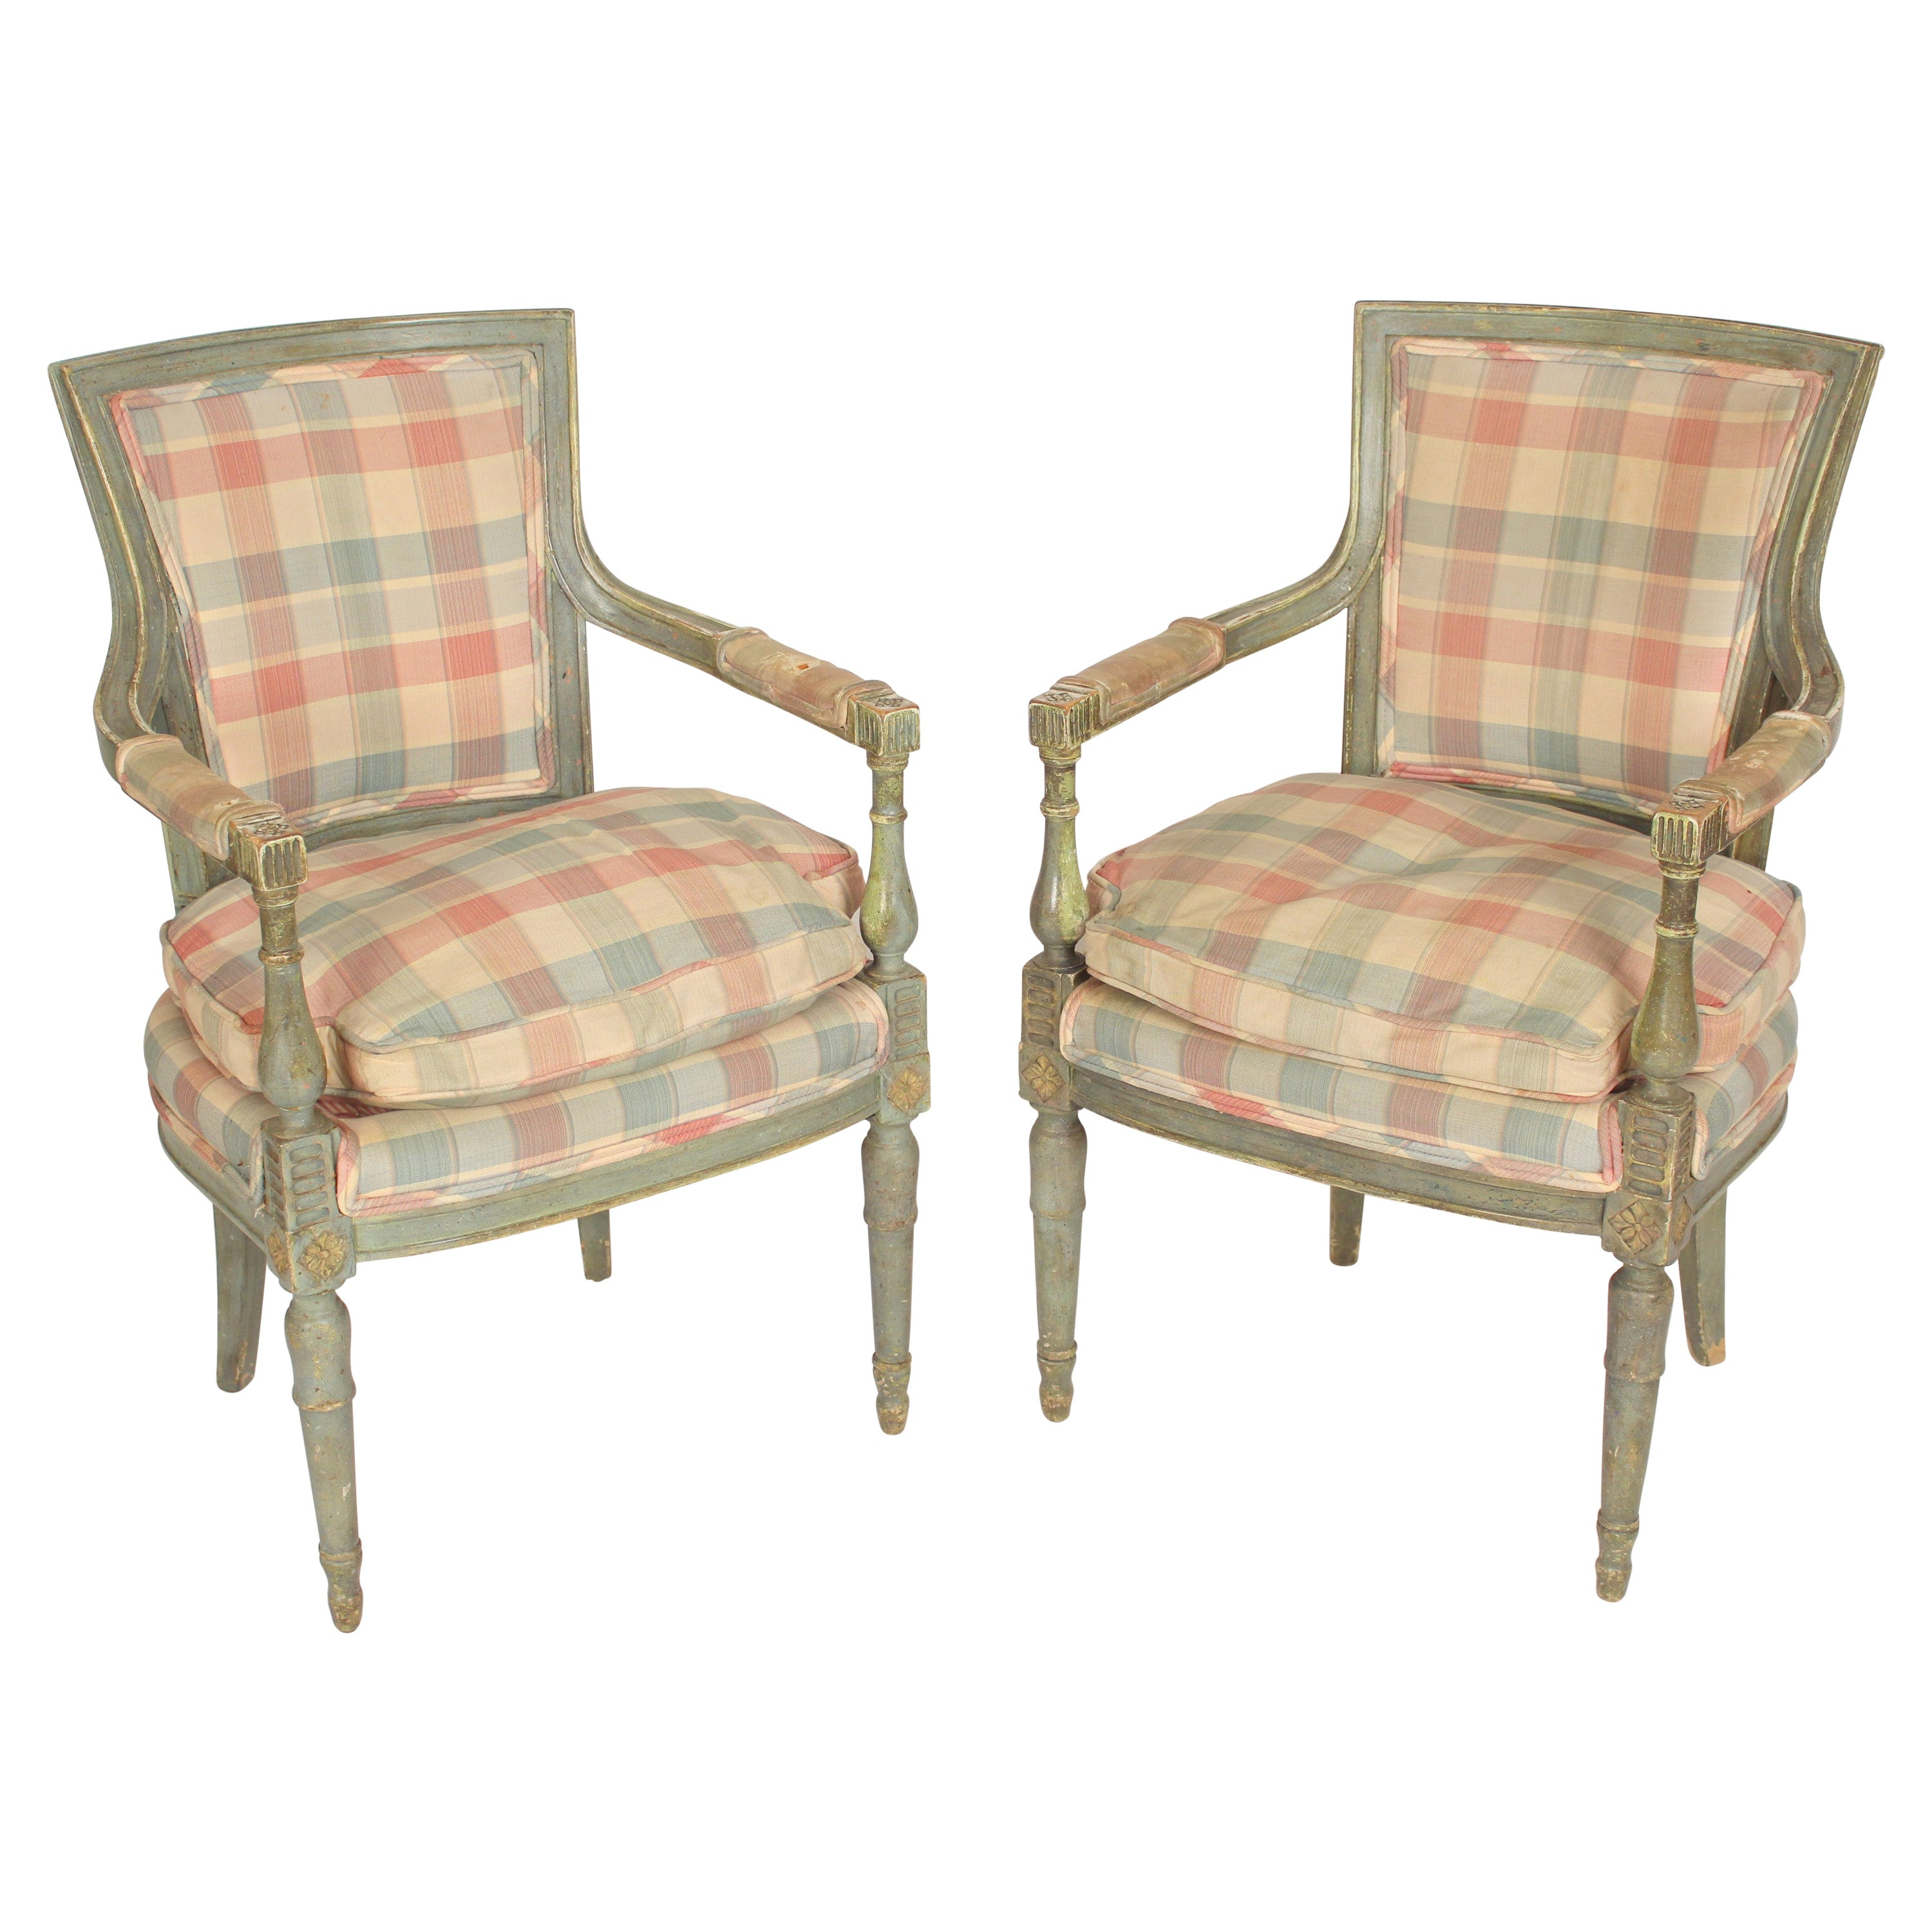 Pair of Louis XVI Style Painted Armchairs